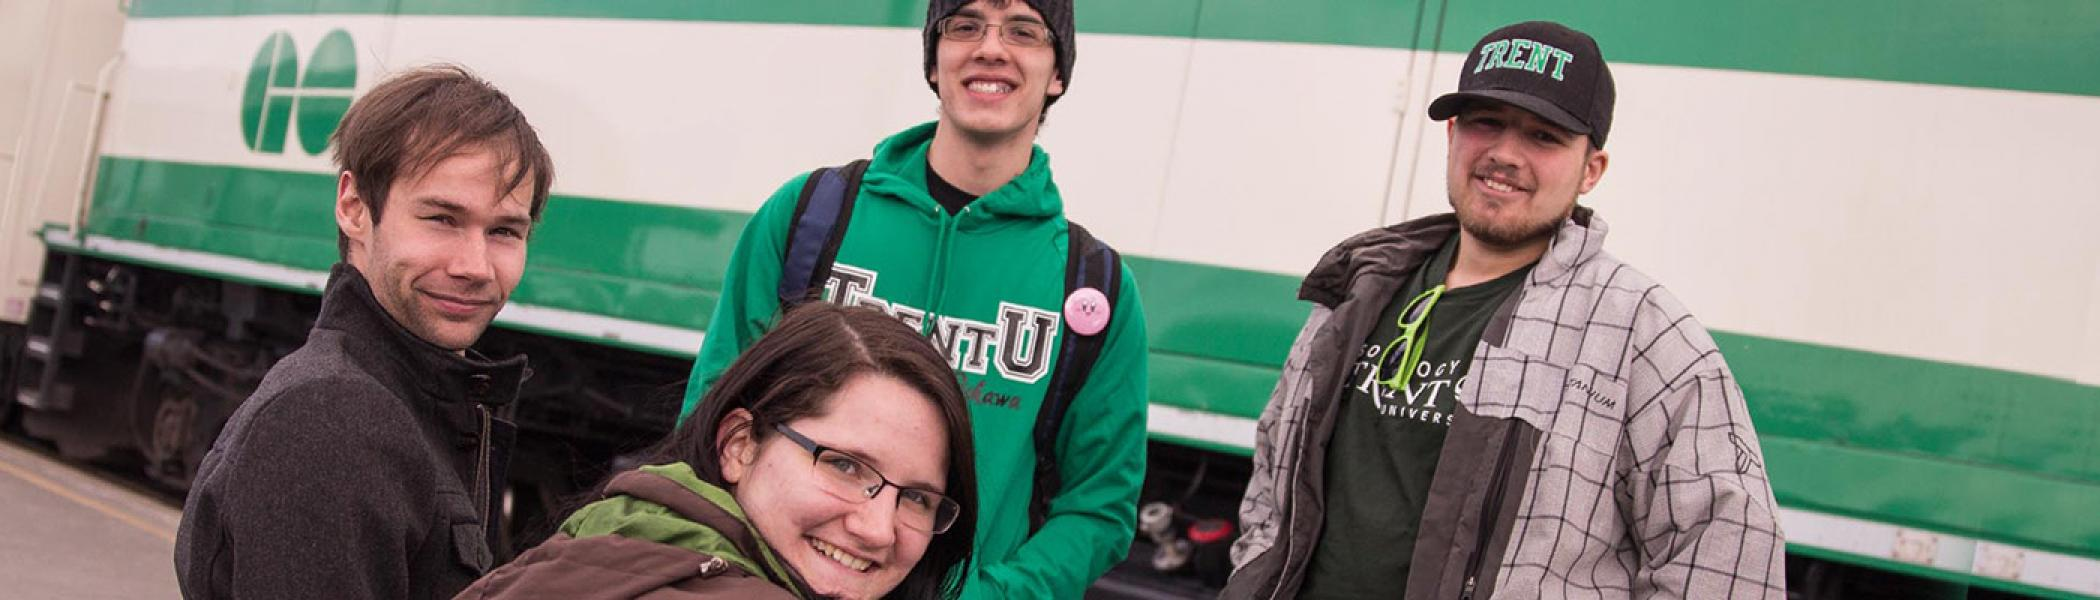 Trent University Durham students are standing in front of the GO train